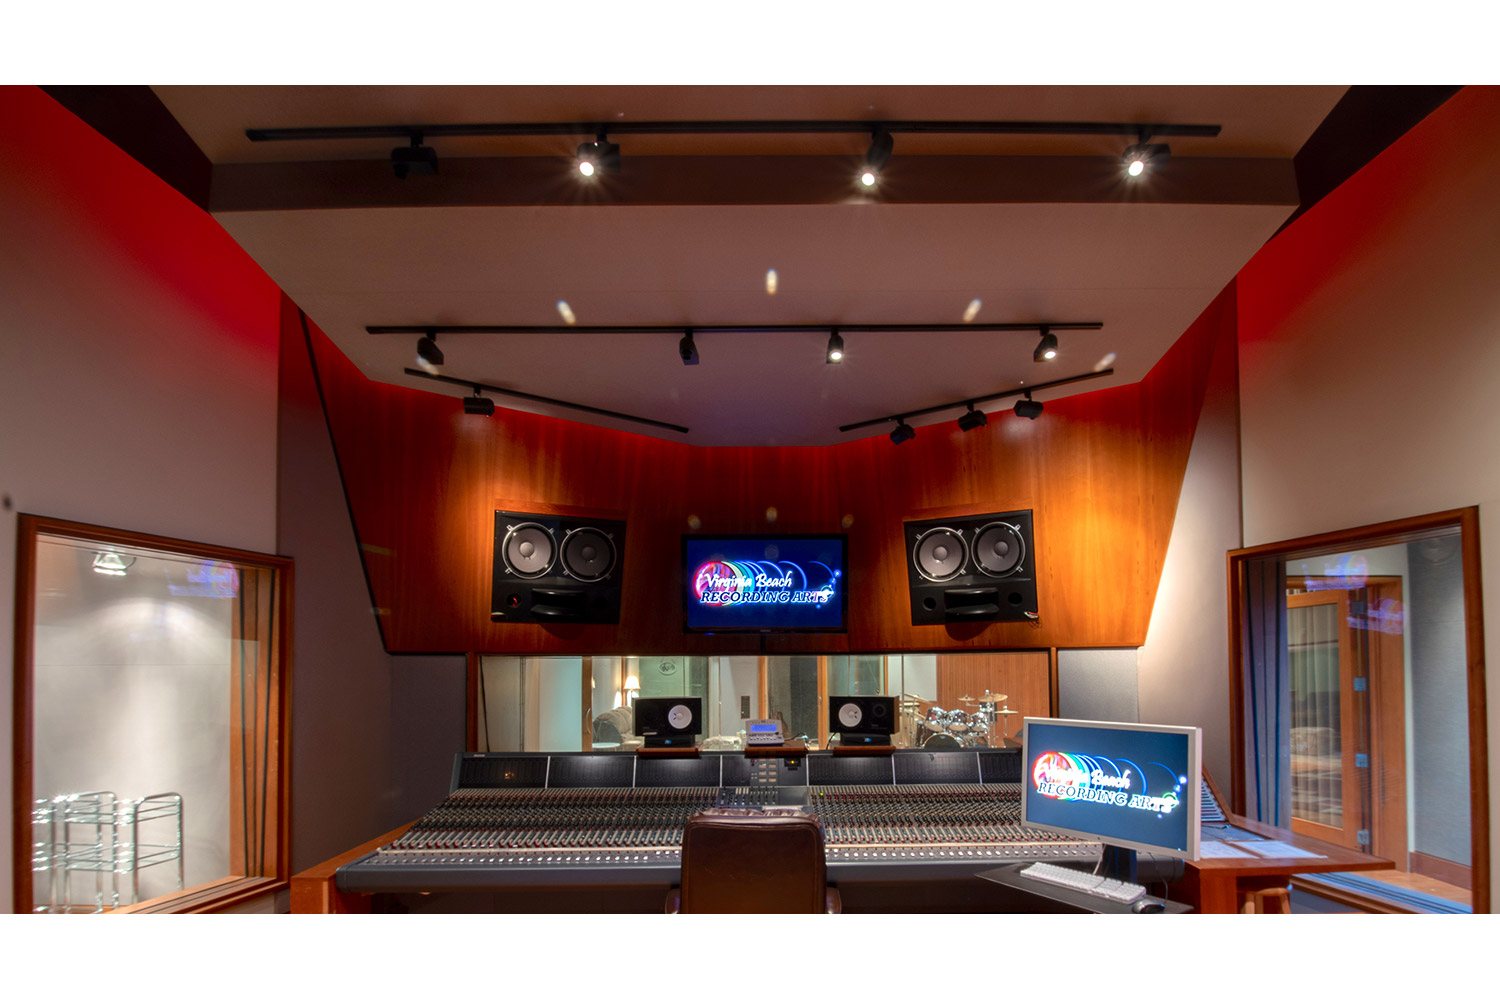 Former Thomas Crown Studio owned by Timbaland, Virginia Beach Recording Studio is a is a spacious 6,756 square ft. two-story 'destination studio' owned by Josh Haddad and designed by WSDG. One of the best recording studios in the world, where artist such as Pharrell, Kanye West, Beyonce and Justin Timberlake record. Control Room A Front View.